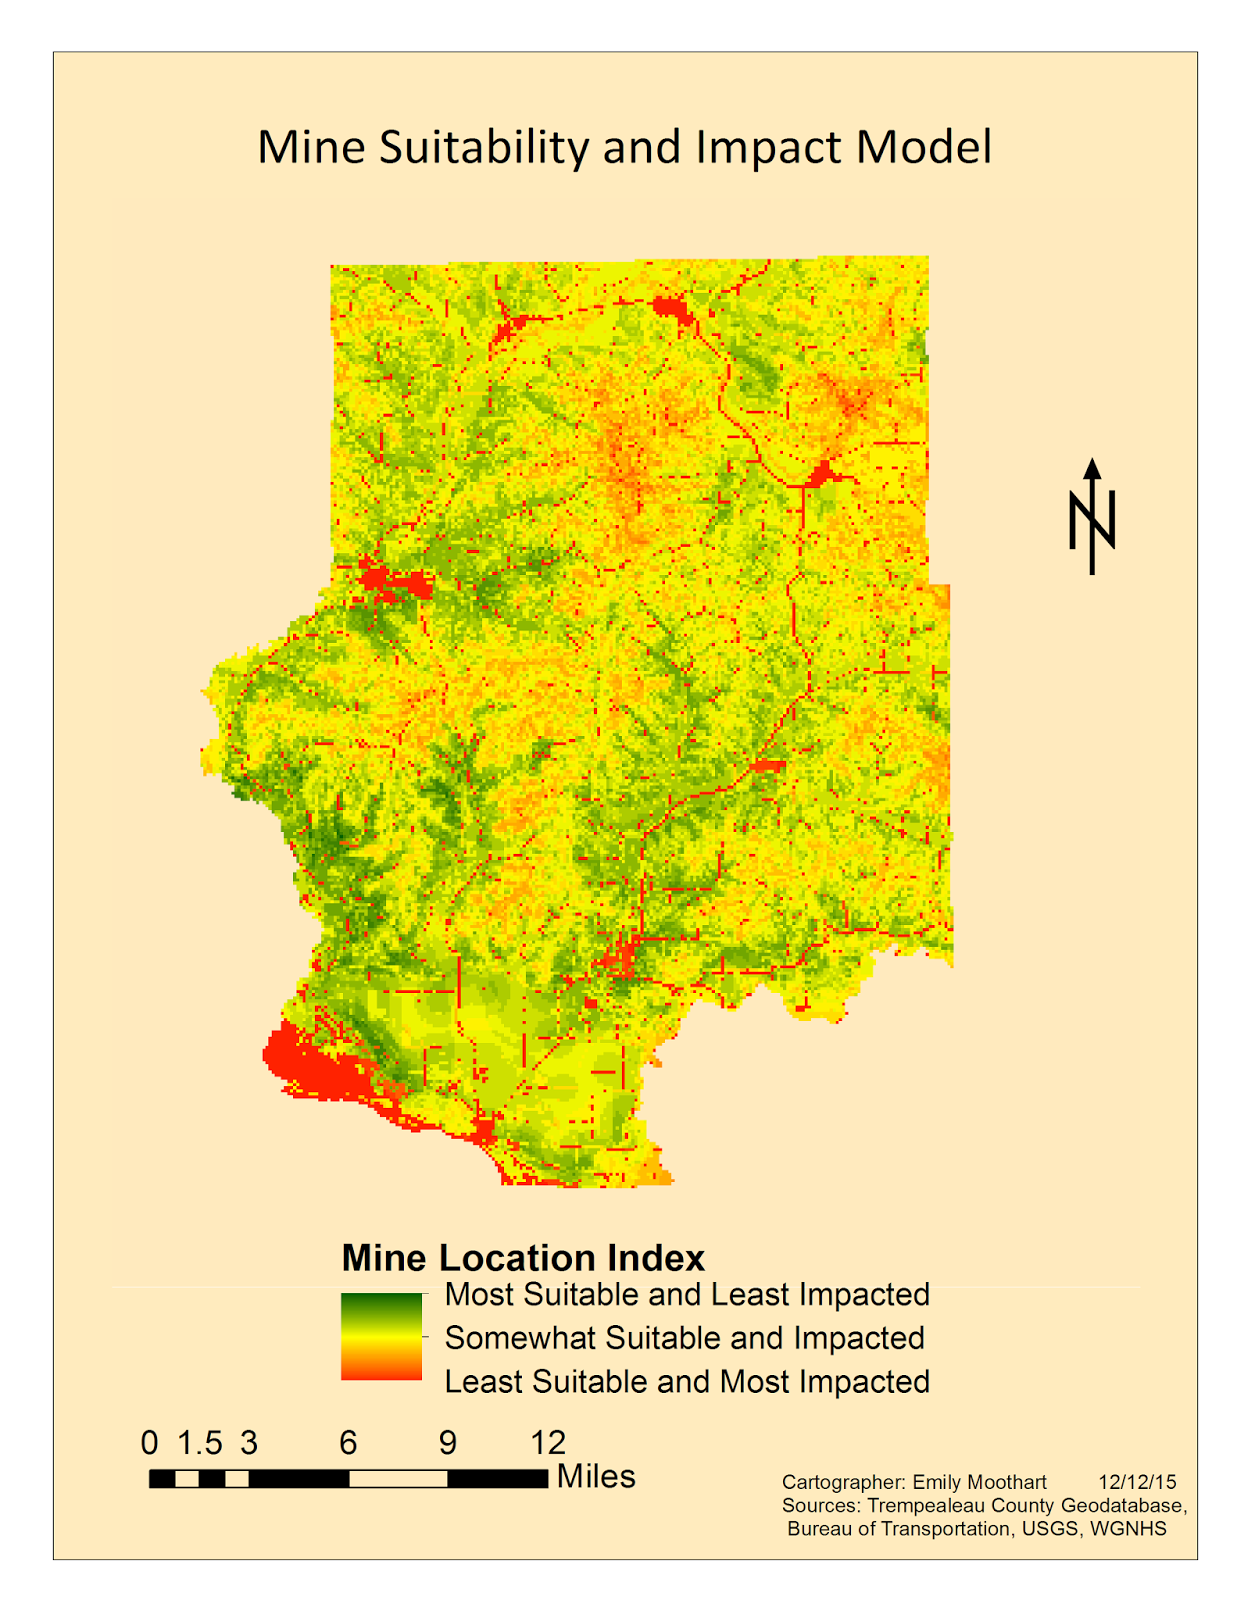 the map depicts the location where is it best to mine in trempealeau county while minimizing disturbances such as streams and residential areas and